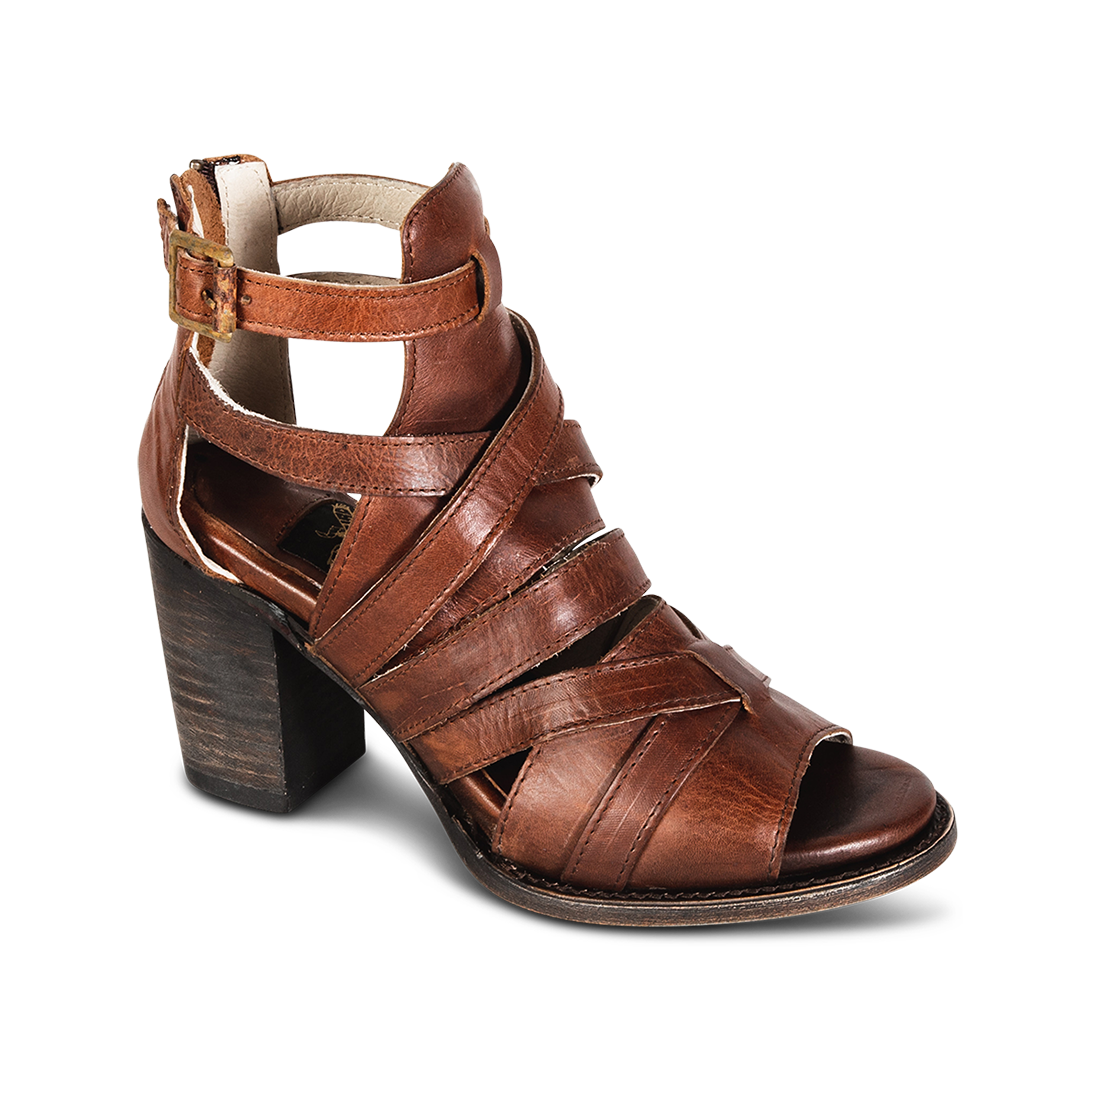 toe sandals, Handcrafted boots, Ankle strap